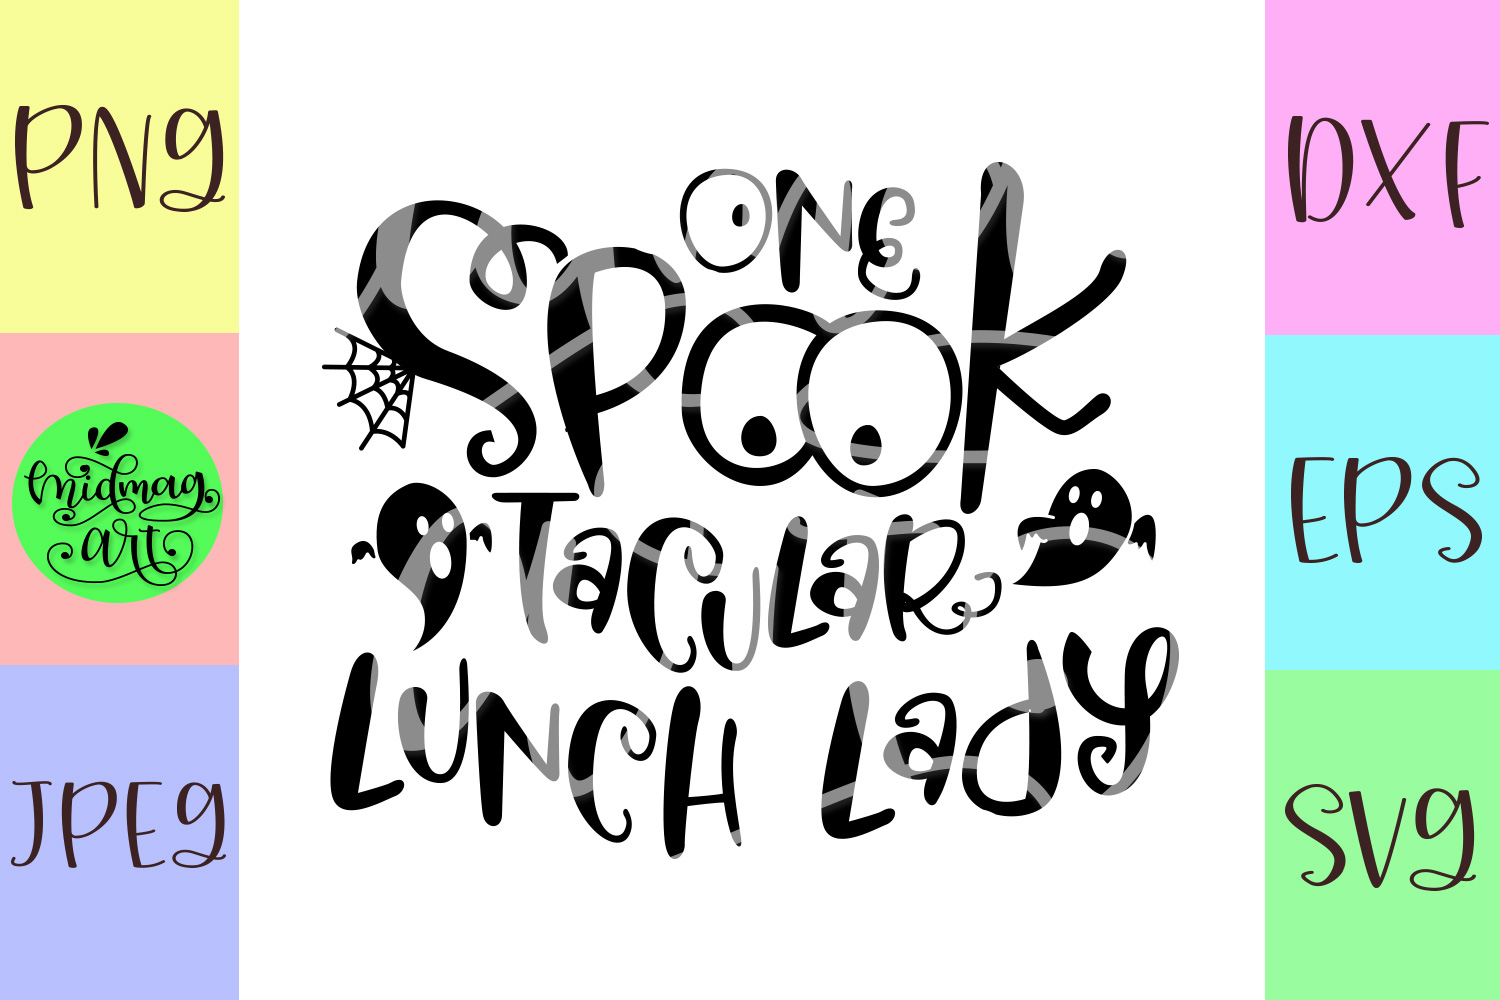 One spooktacular lunch lady svg, lunch lady halloween svg example image 2